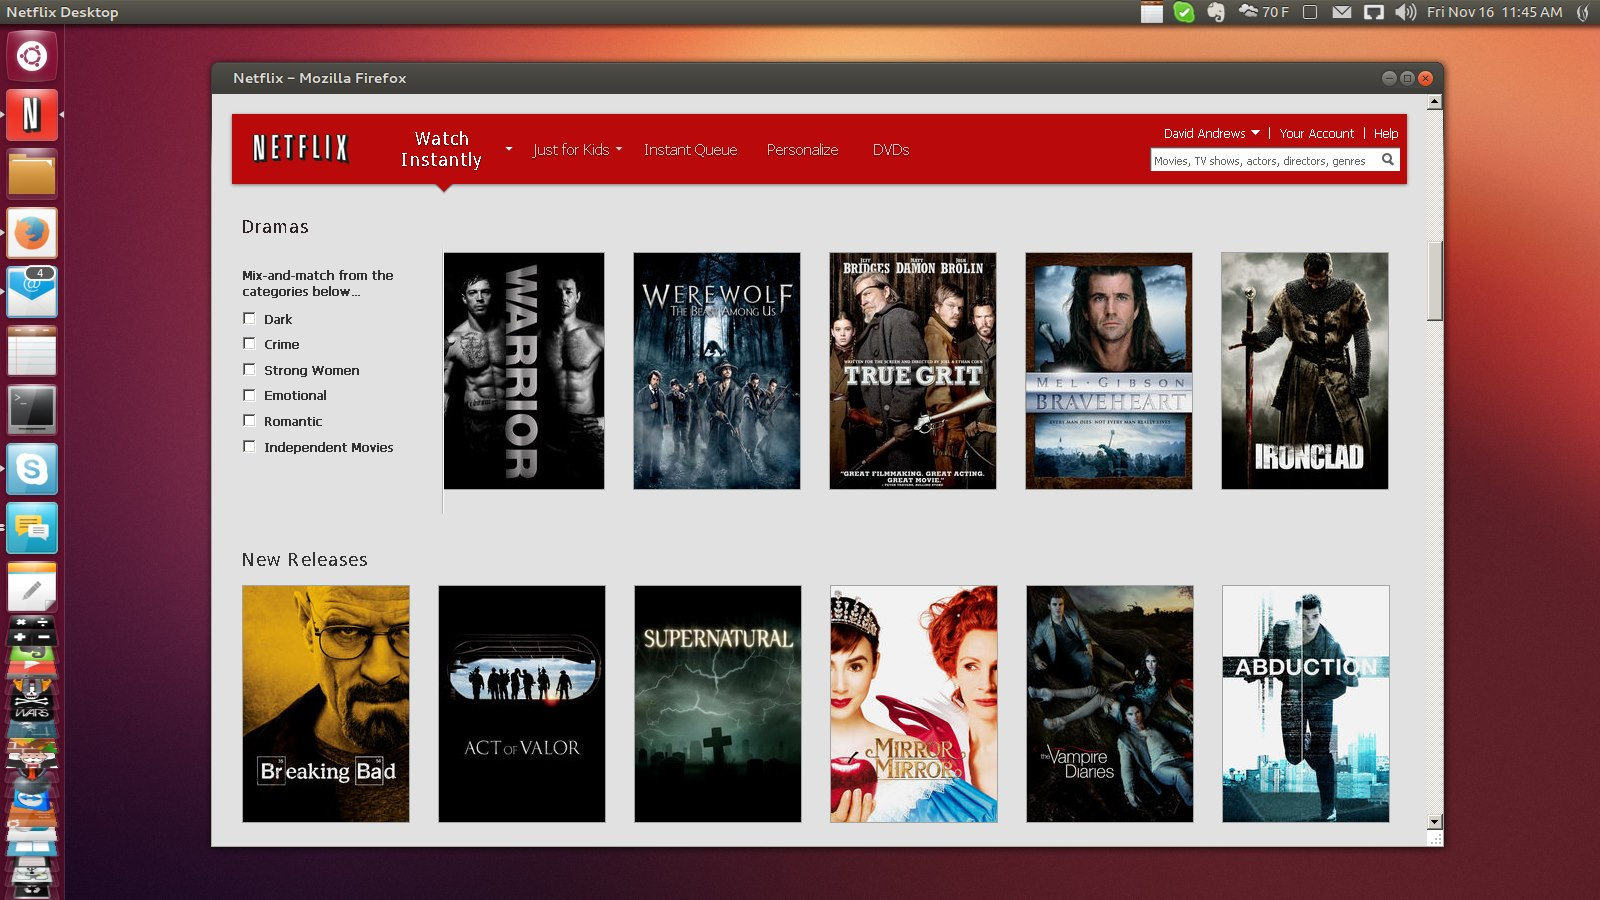 Any way to make my Netflix stream Standard Definition INSTEAD OF High Definition